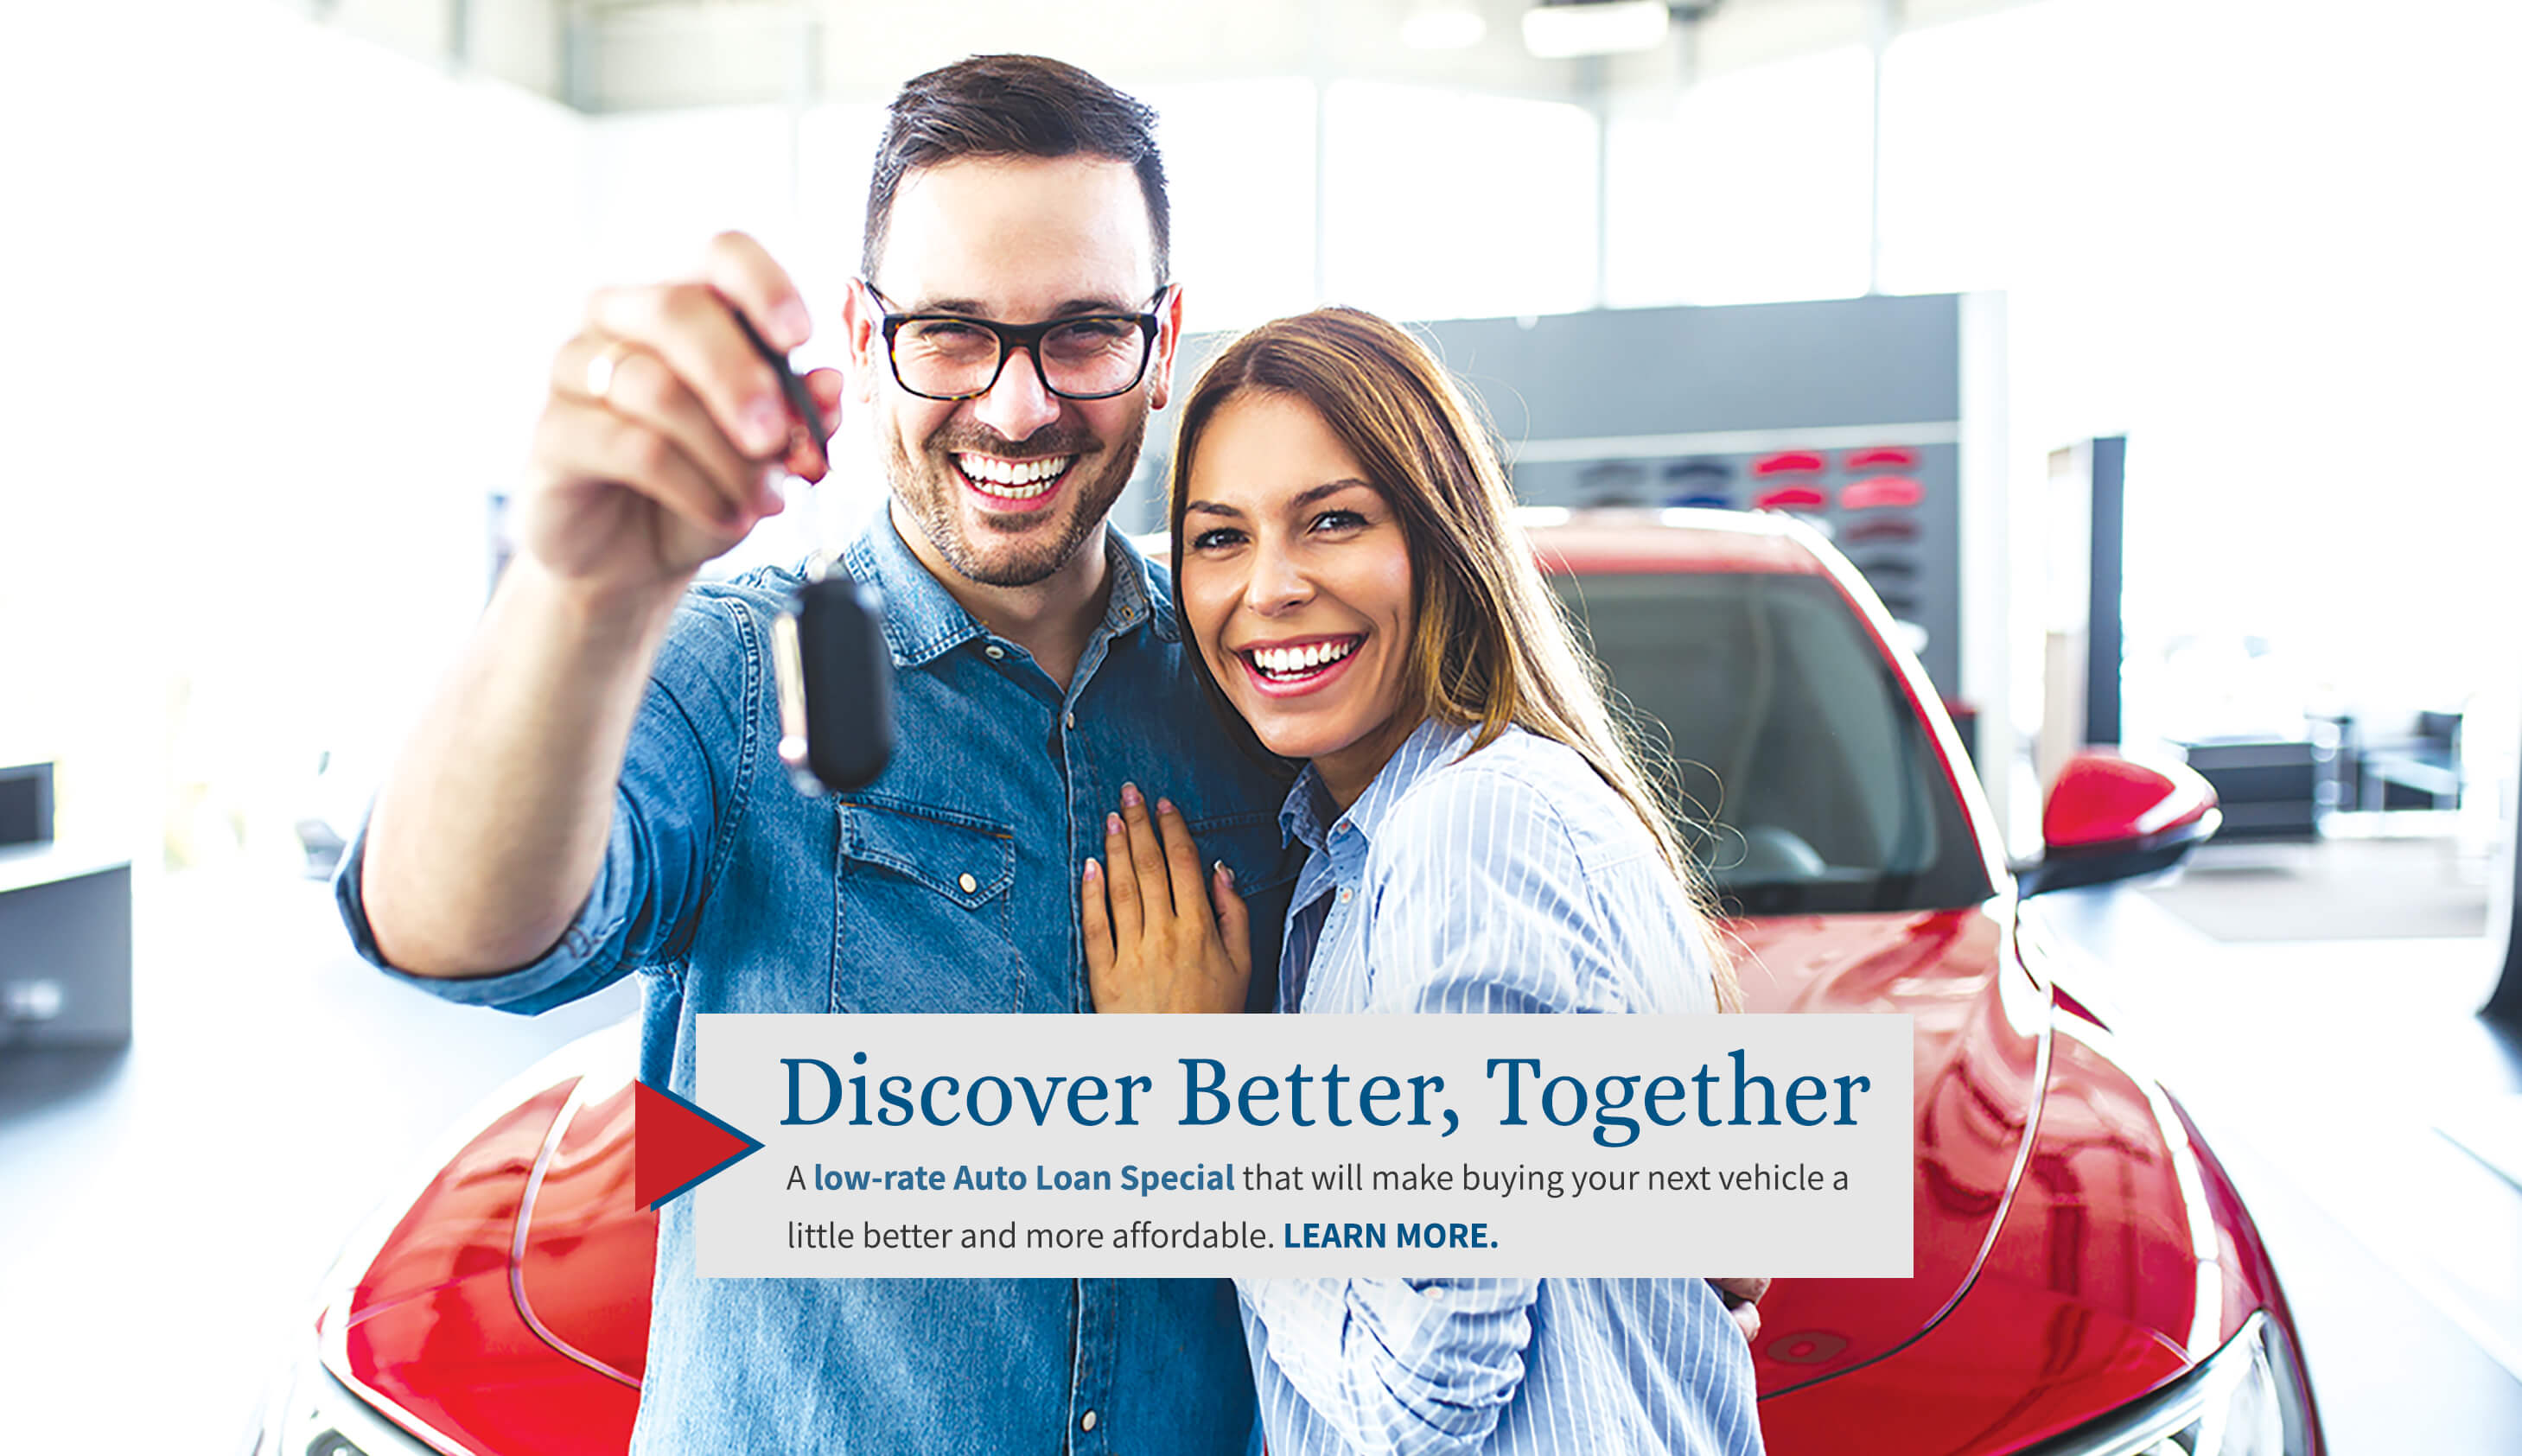 Discover Better, Together. A low-rate Auto Loan Special that will make buying your next vehicle a little better and more affordable. Learn More.